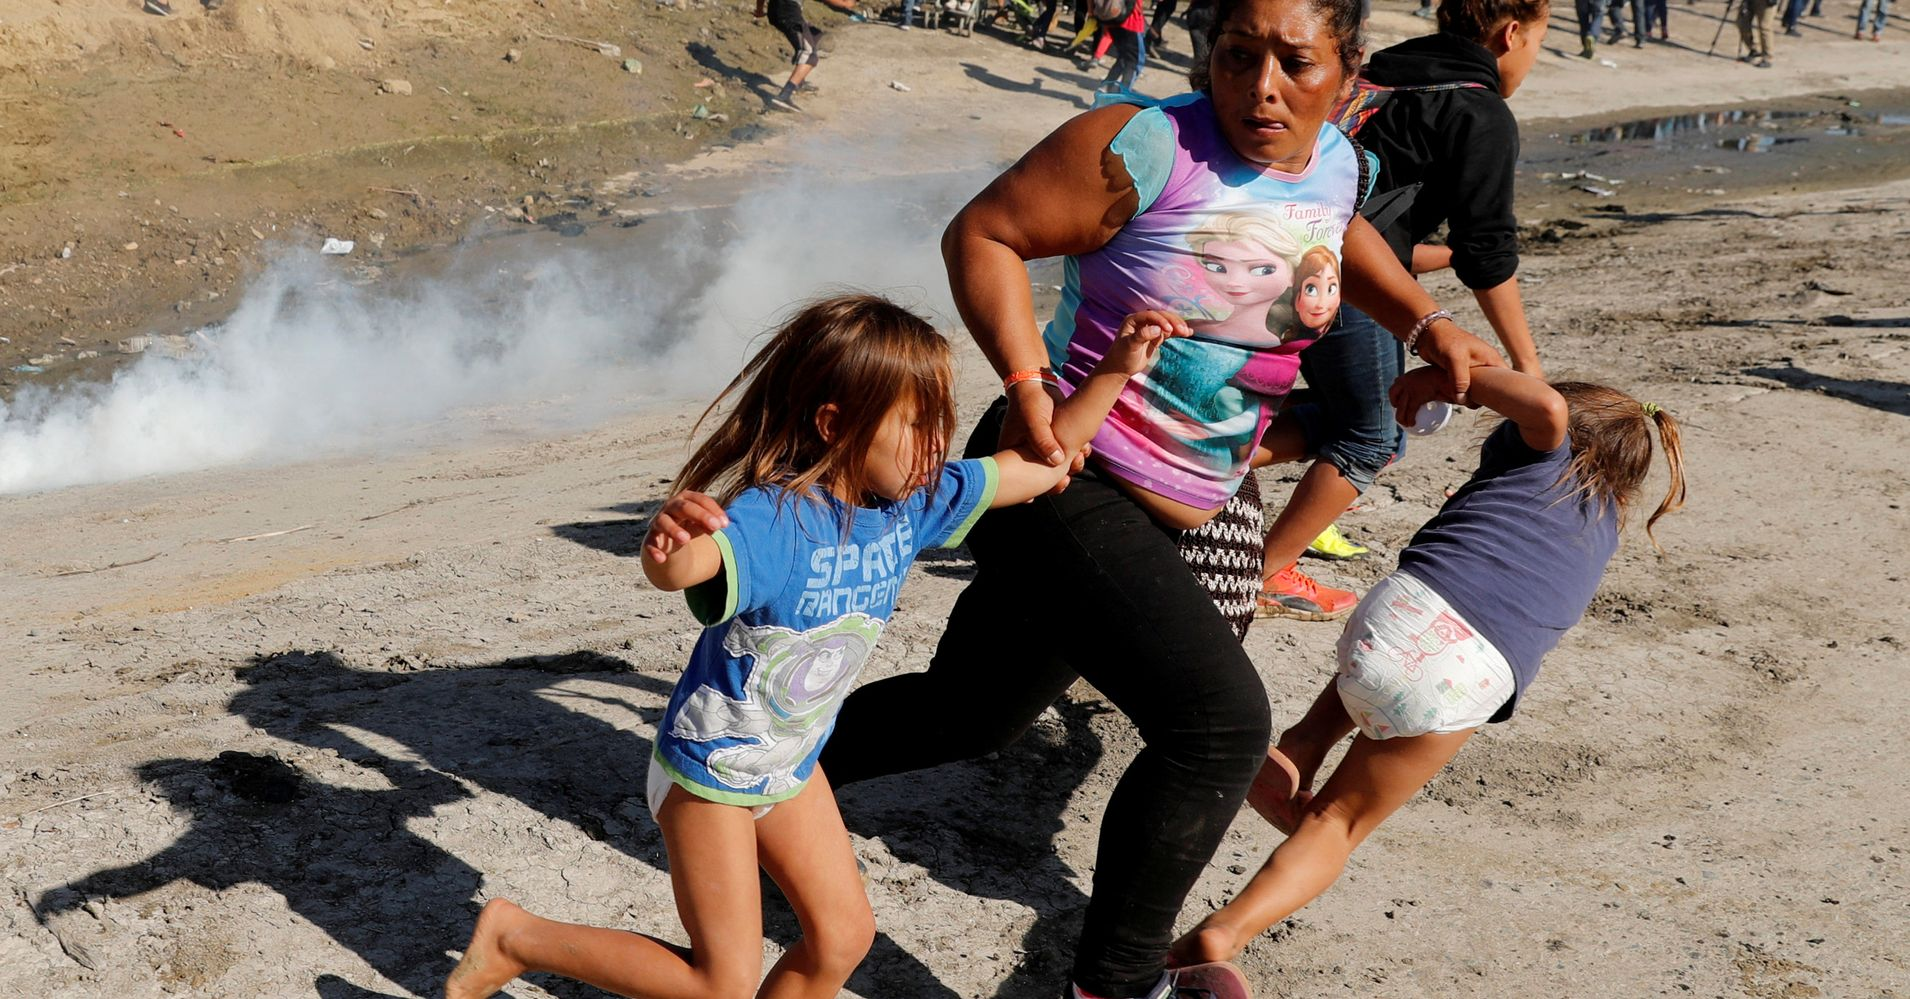 Activists, Politicians React With Horror At Border Scenes ...